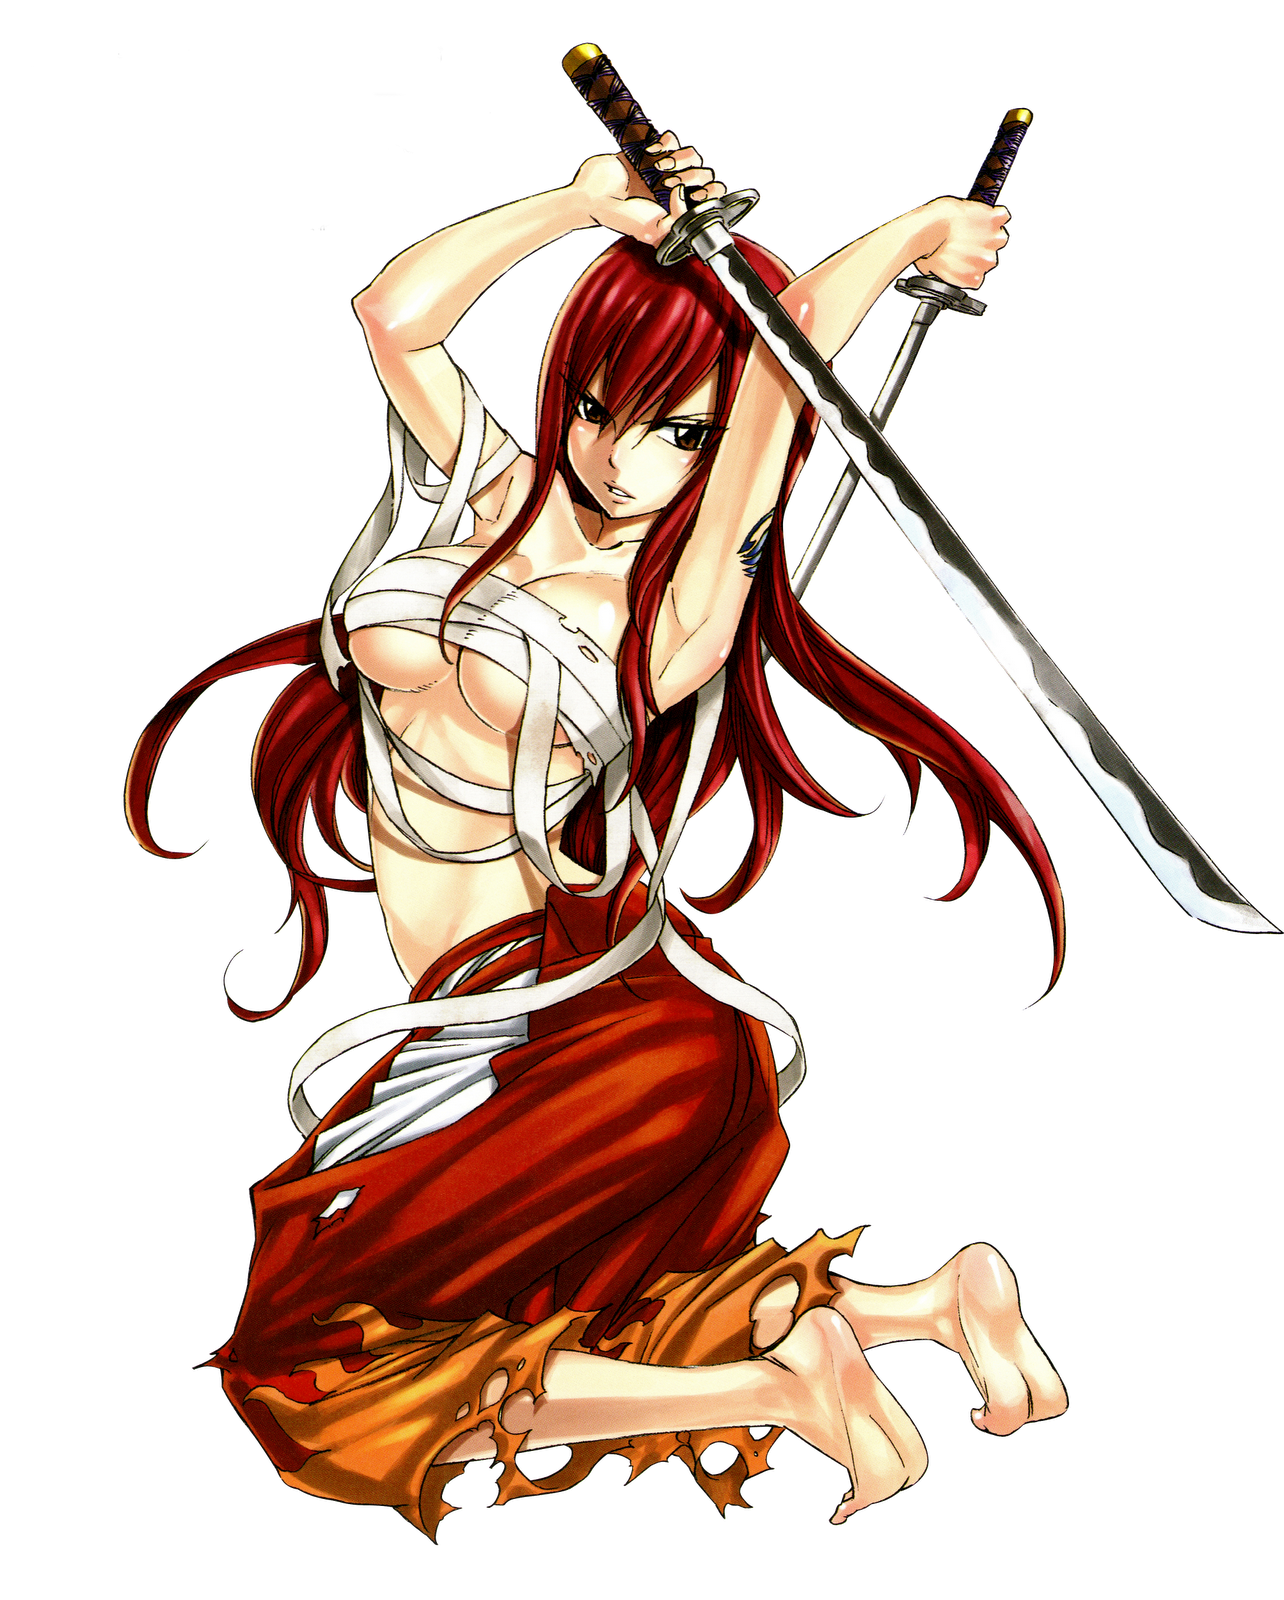 Fairy Tail PNG Images Transparent Free Download.